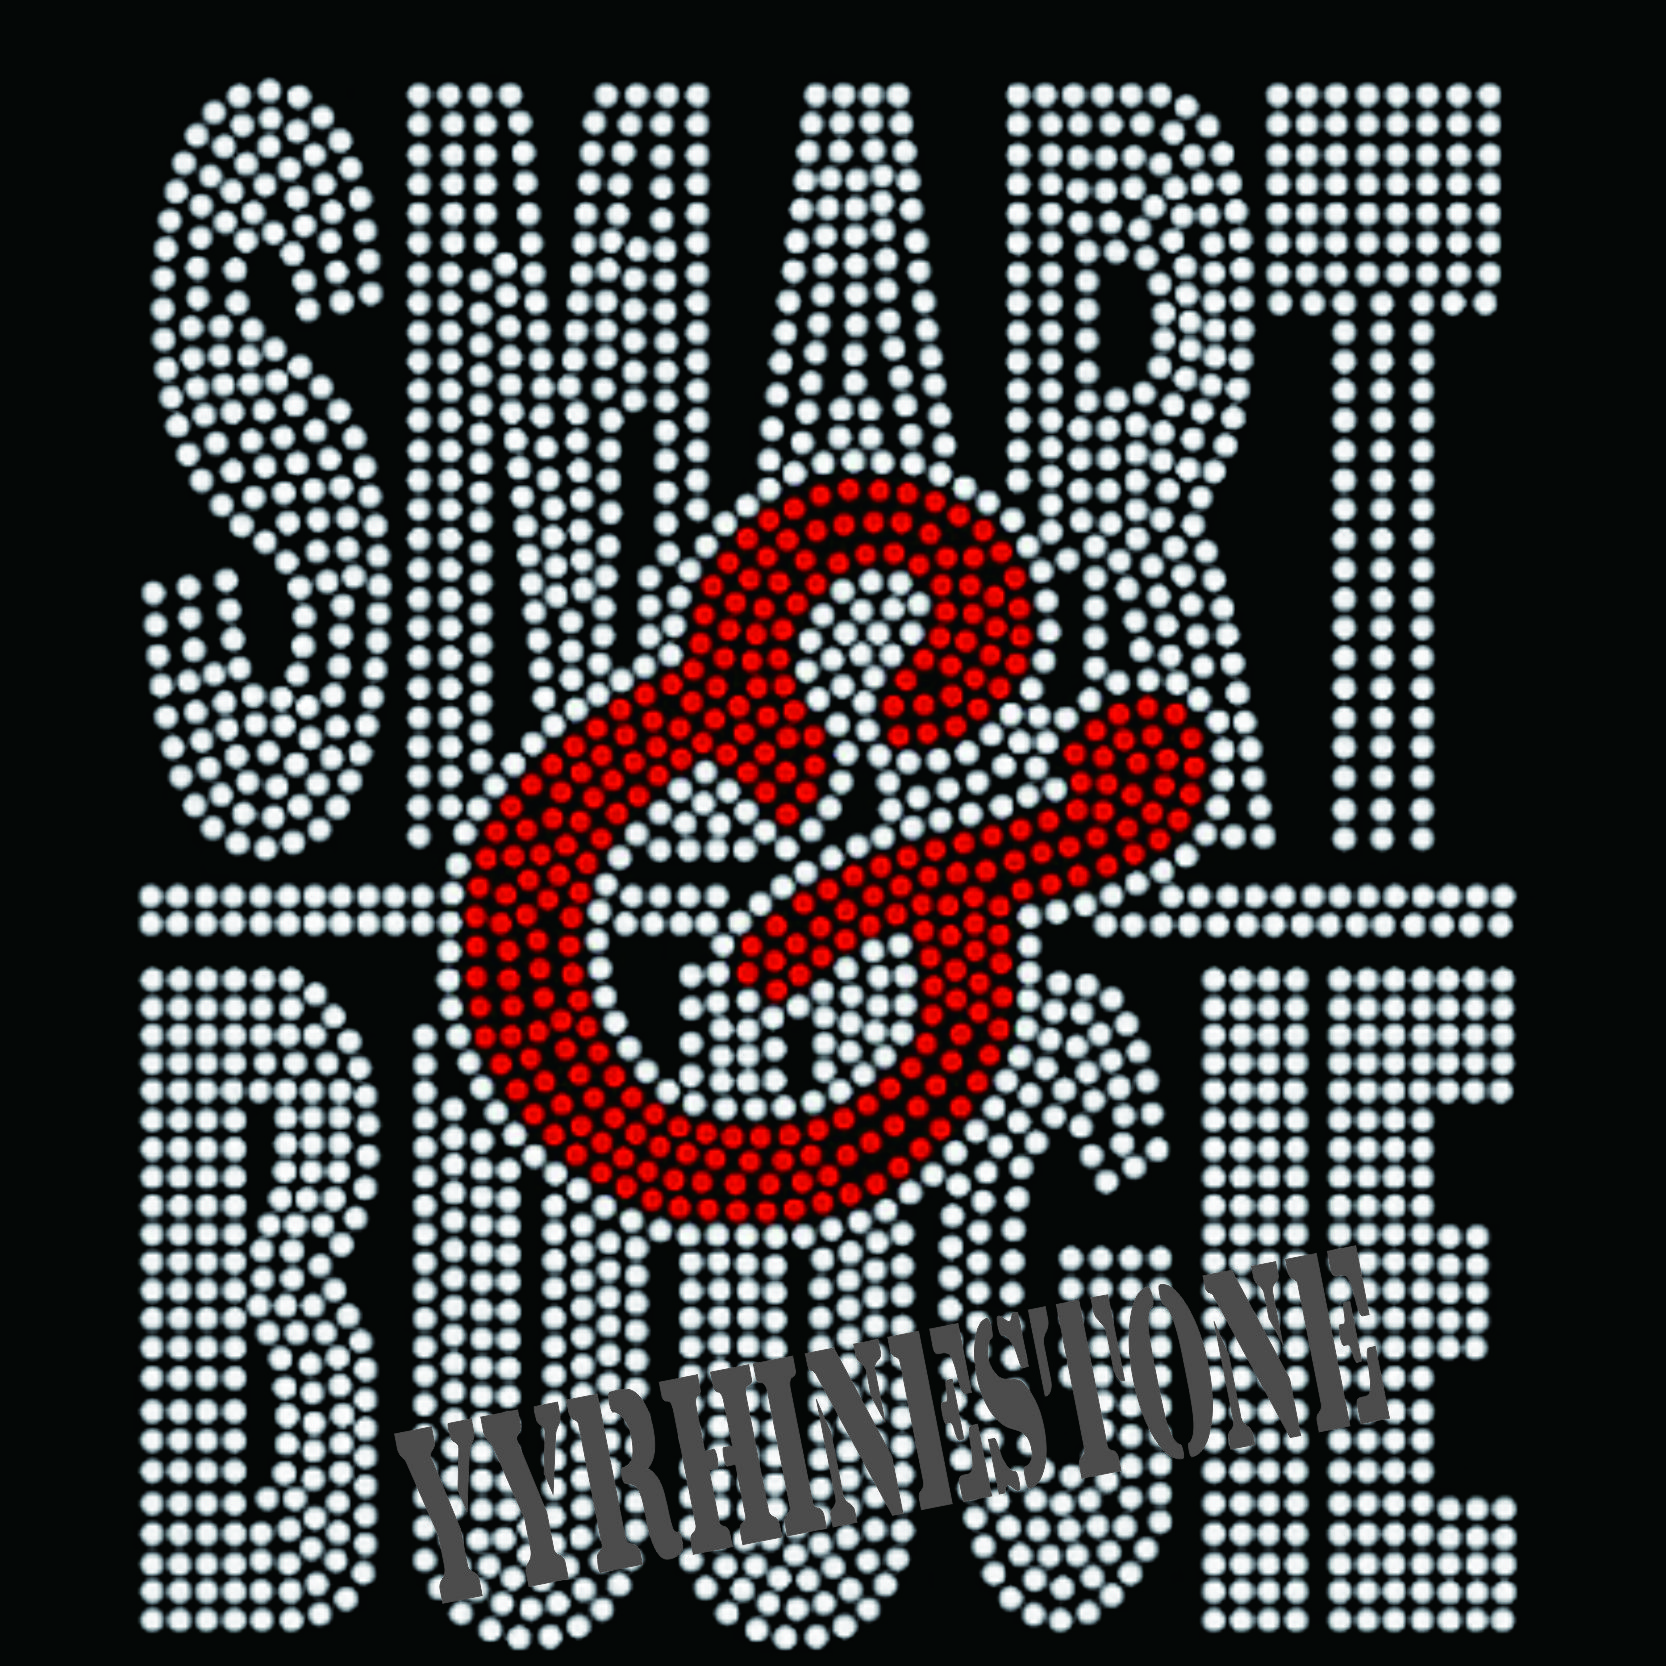 Smart bougie hotfix rhinestone transfer